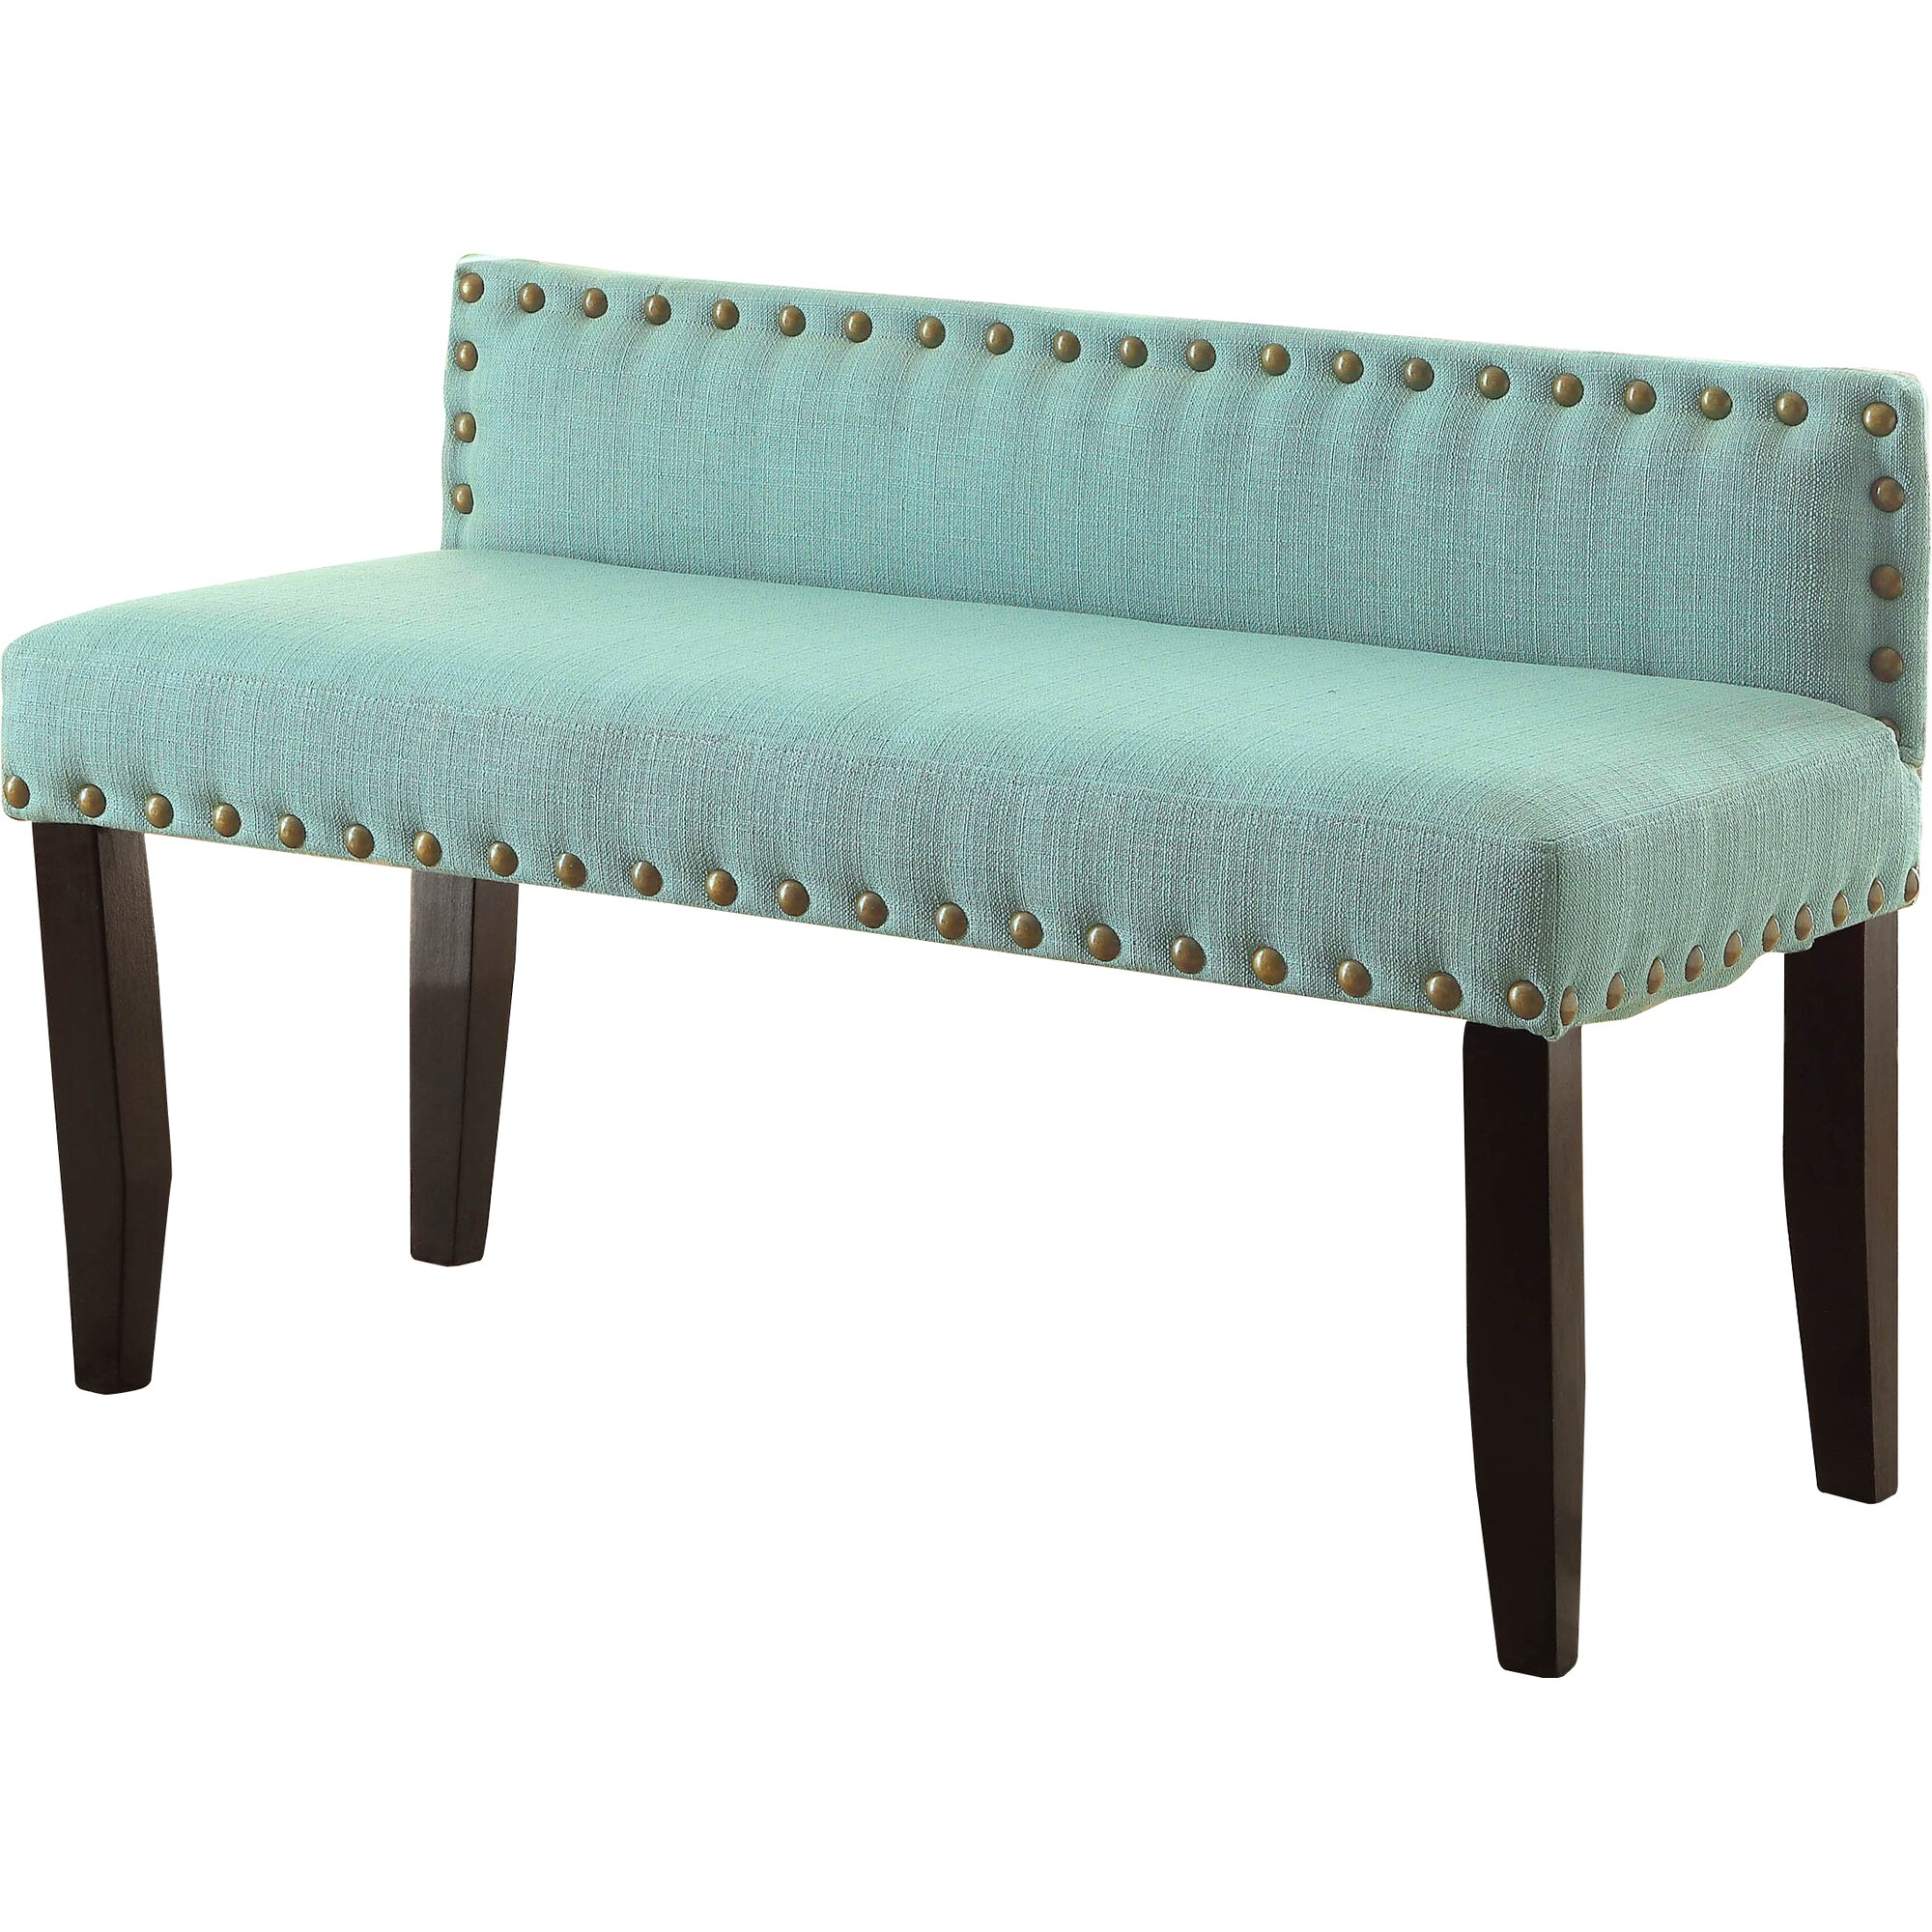 Faiths Upholstered Bedroom Bench & Reviews